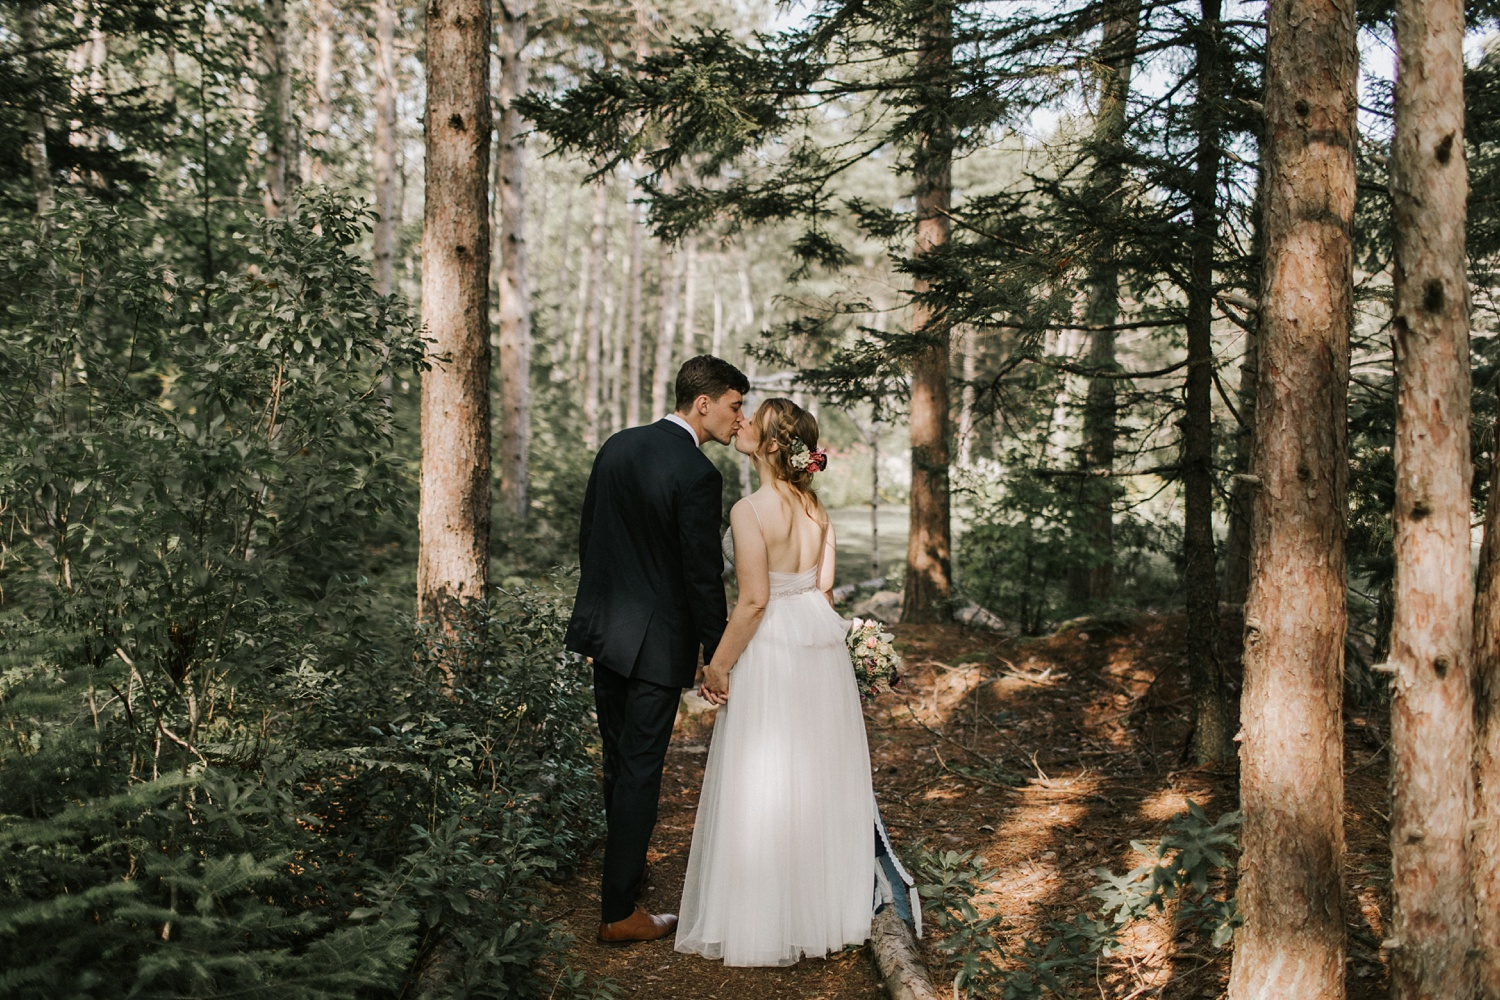 Hidden Pond, Wedding Venue, Wedding Photography, Wedding Photographer, Maine Wedding, BHLDN, Wedding Dress, Watershed Floral